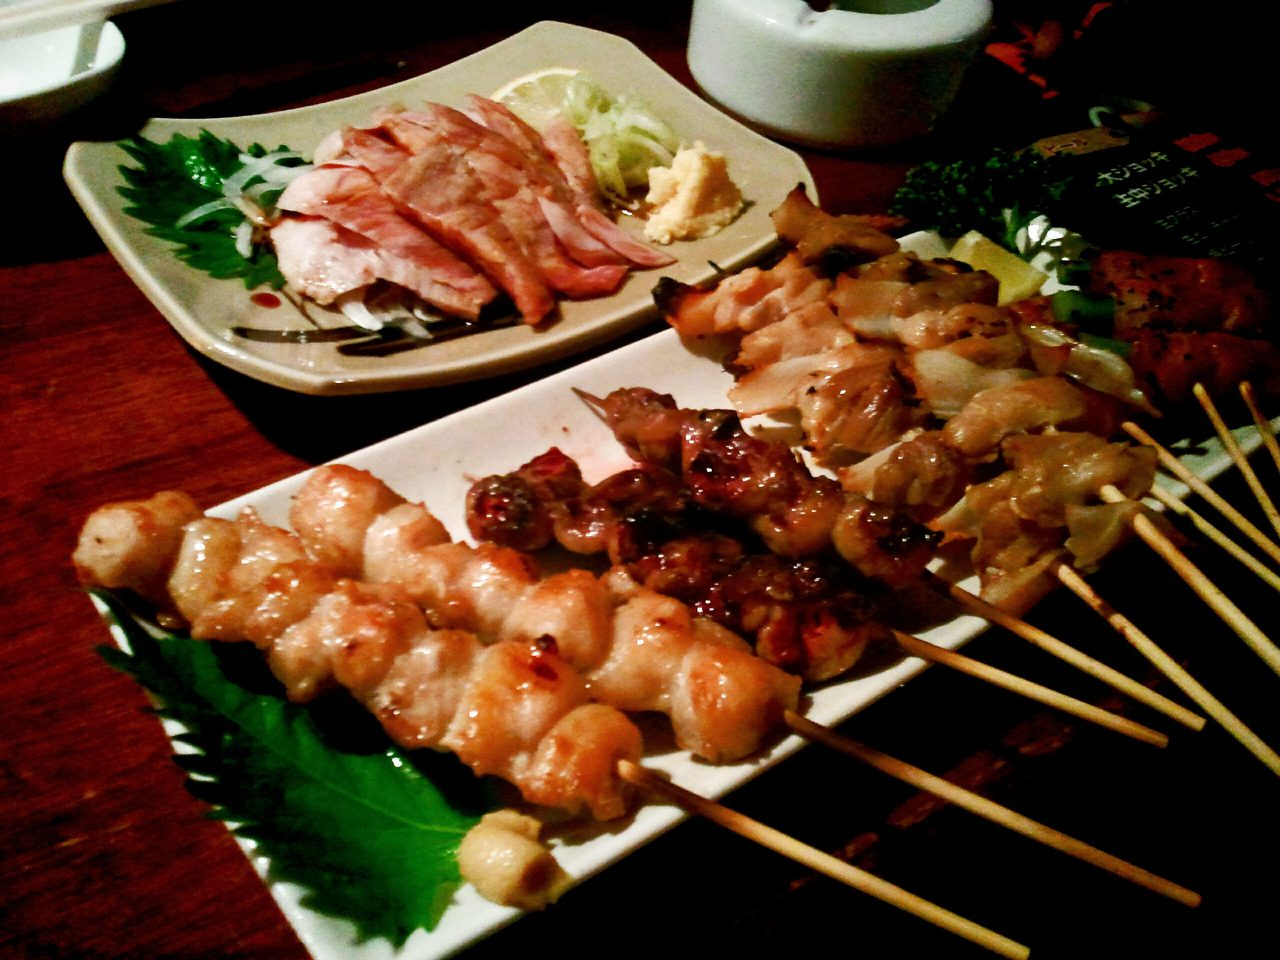 Yakitori is a popular way to enjoy chicken